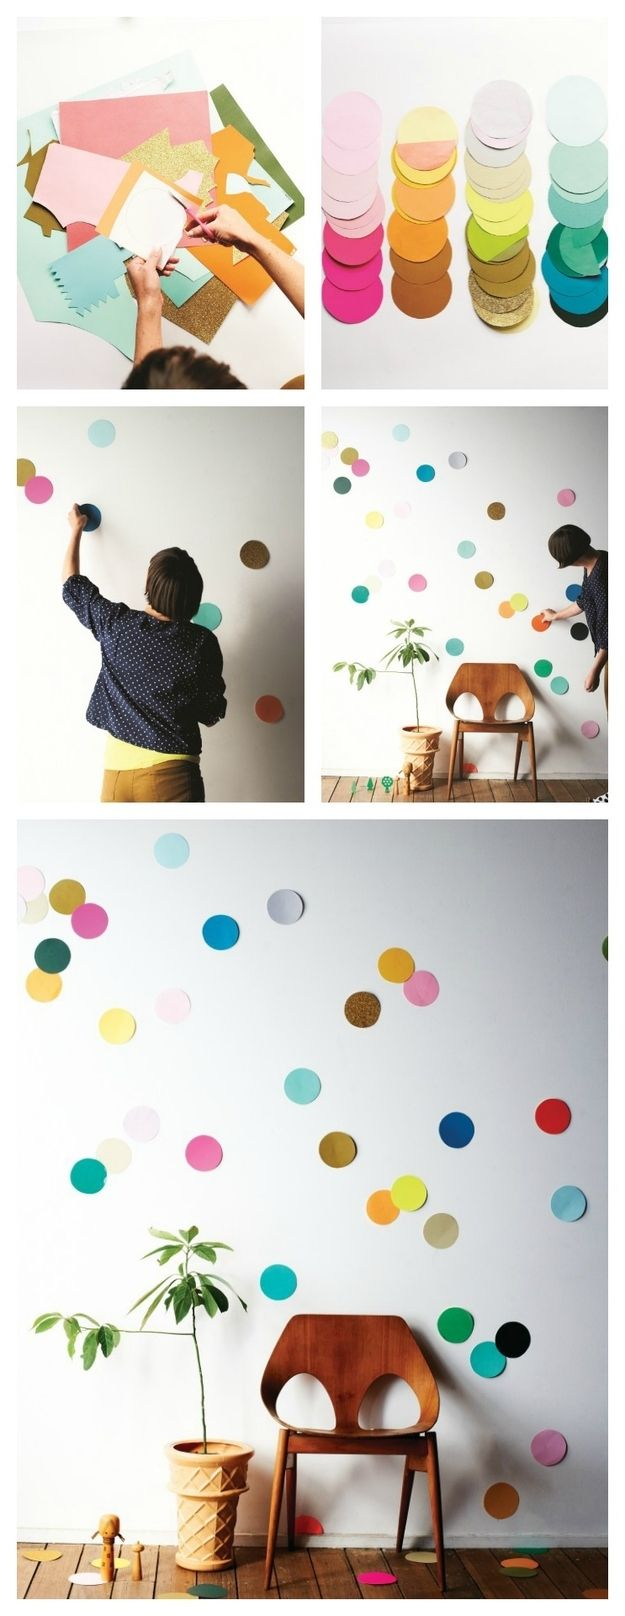 Cut circles from an array of colorful and textured papers and adhere them to the wall using Blu-Tack. You can use them as decorations for a special event or leave them up!